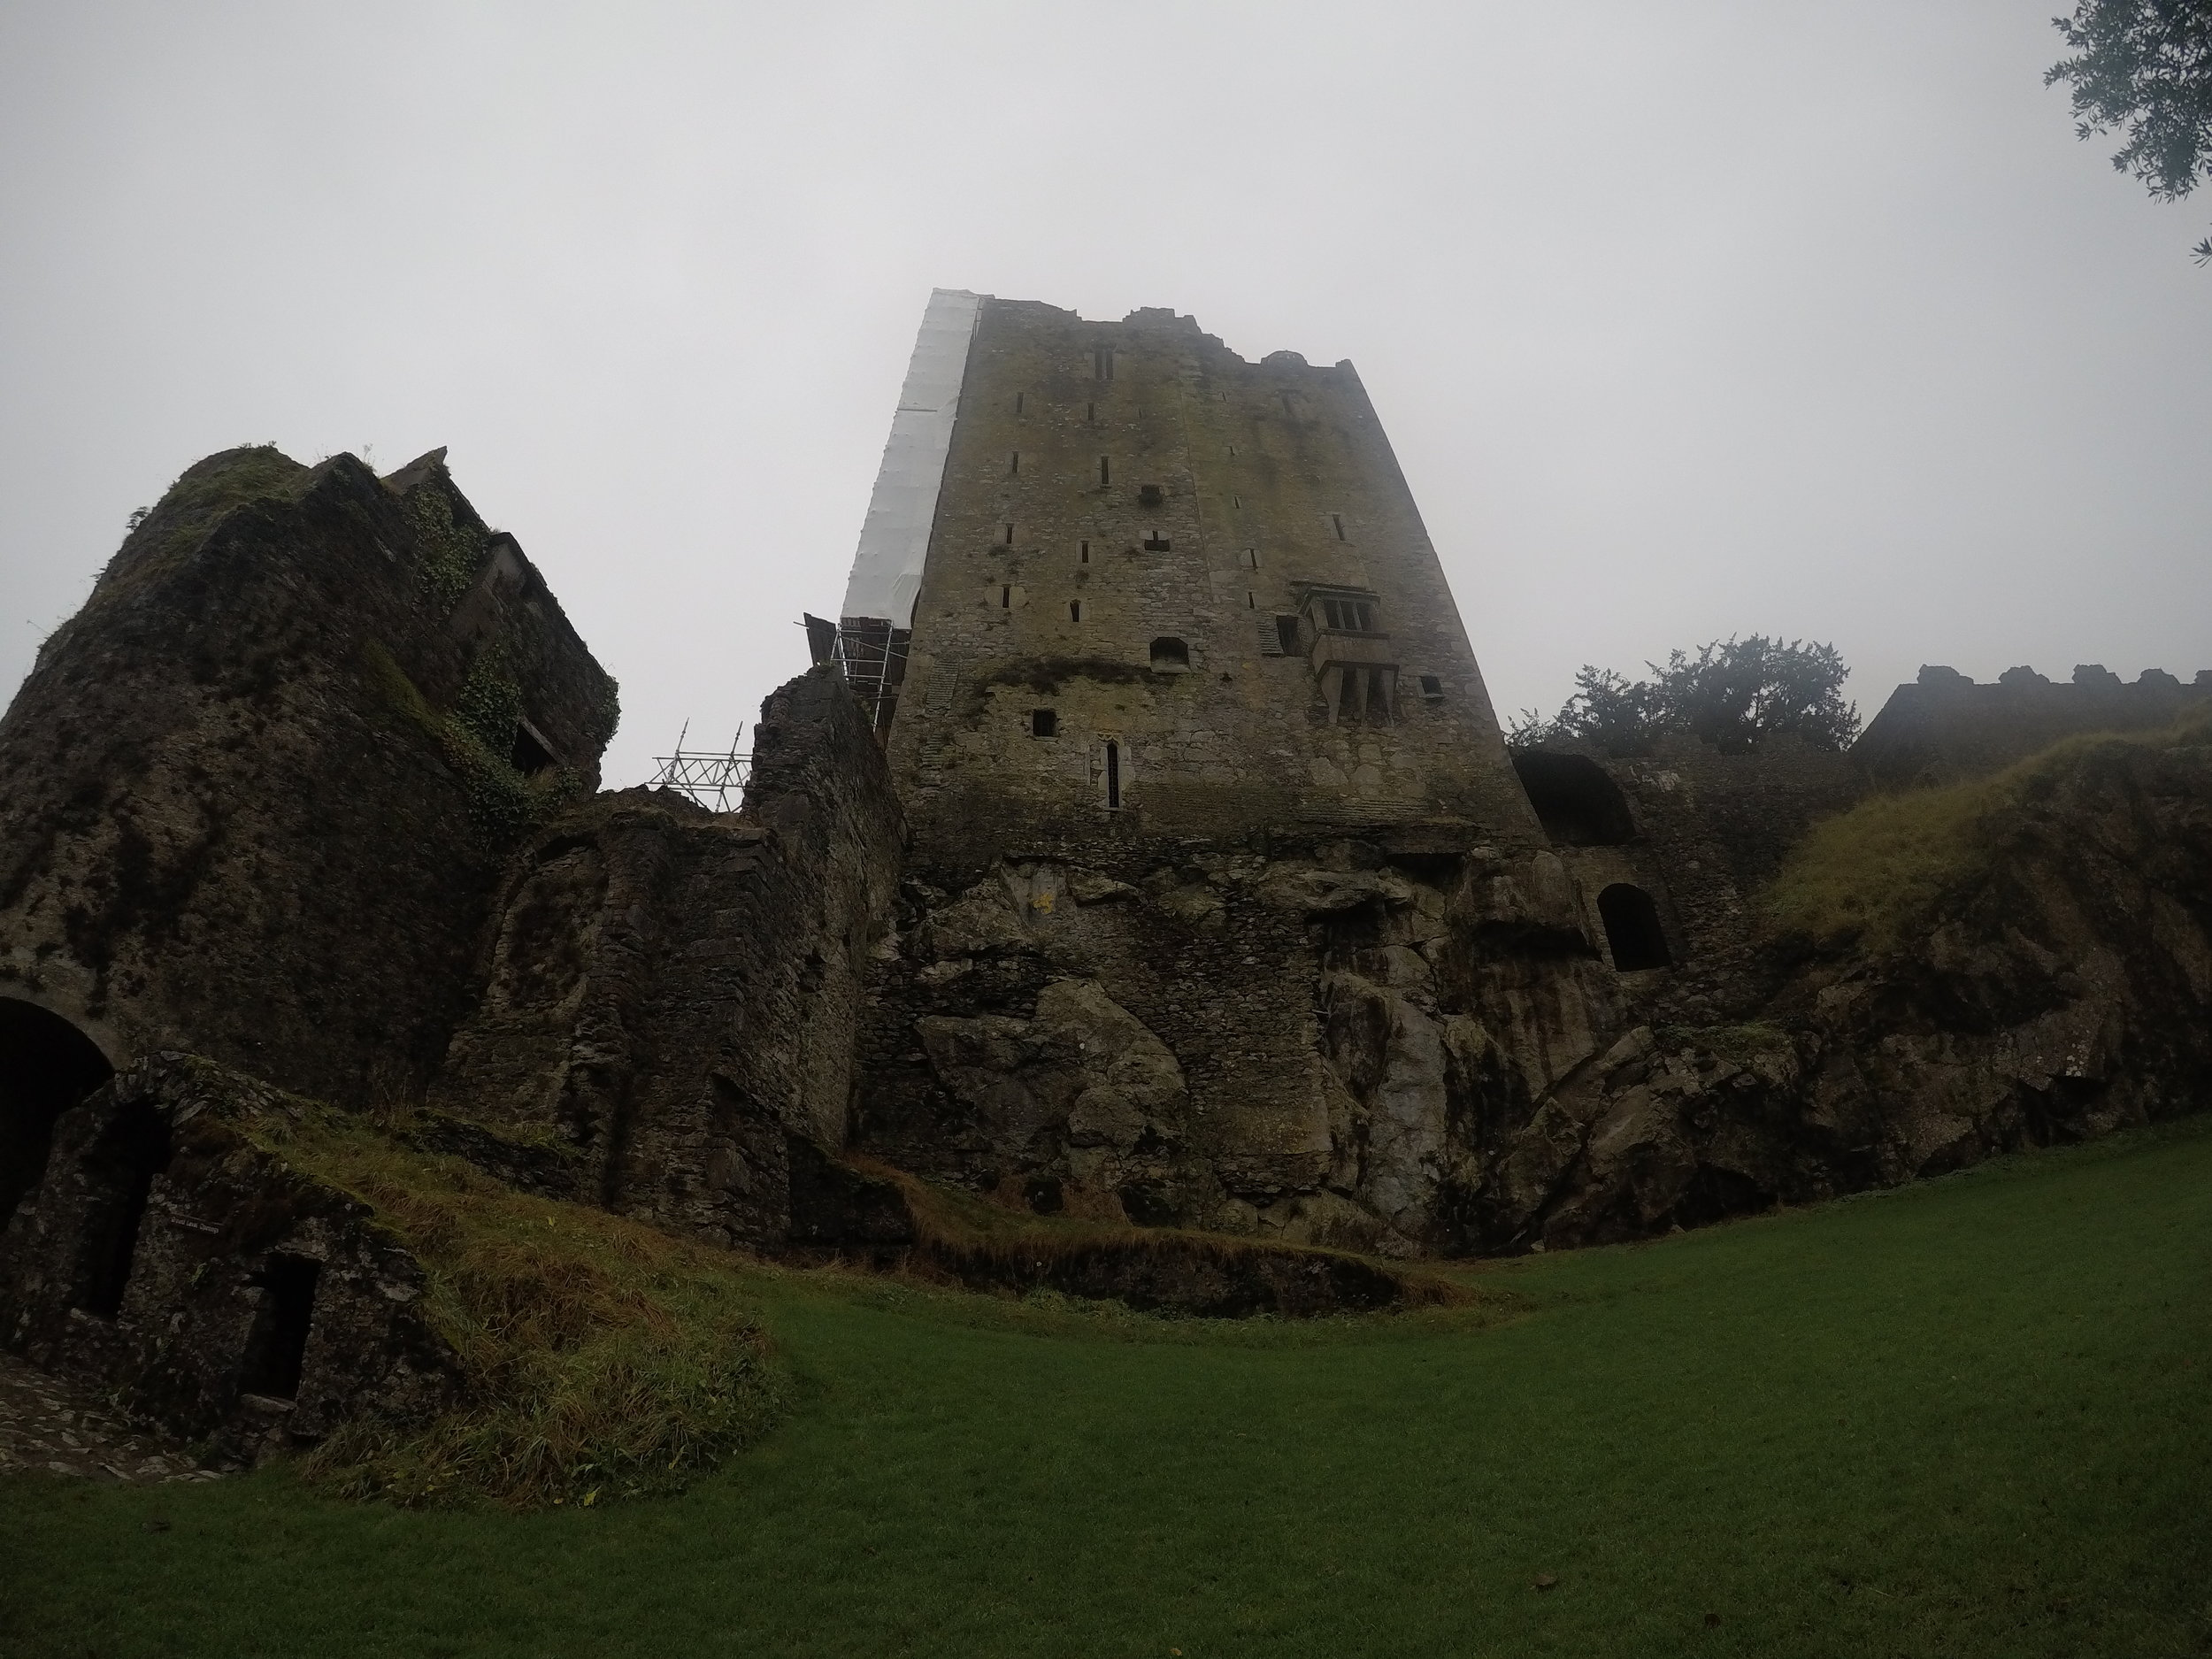 The Castle also sits above a cave that can be toured, that was used by its defenders to safely escape Oliver Cromwell's forces during the seventeenth century.